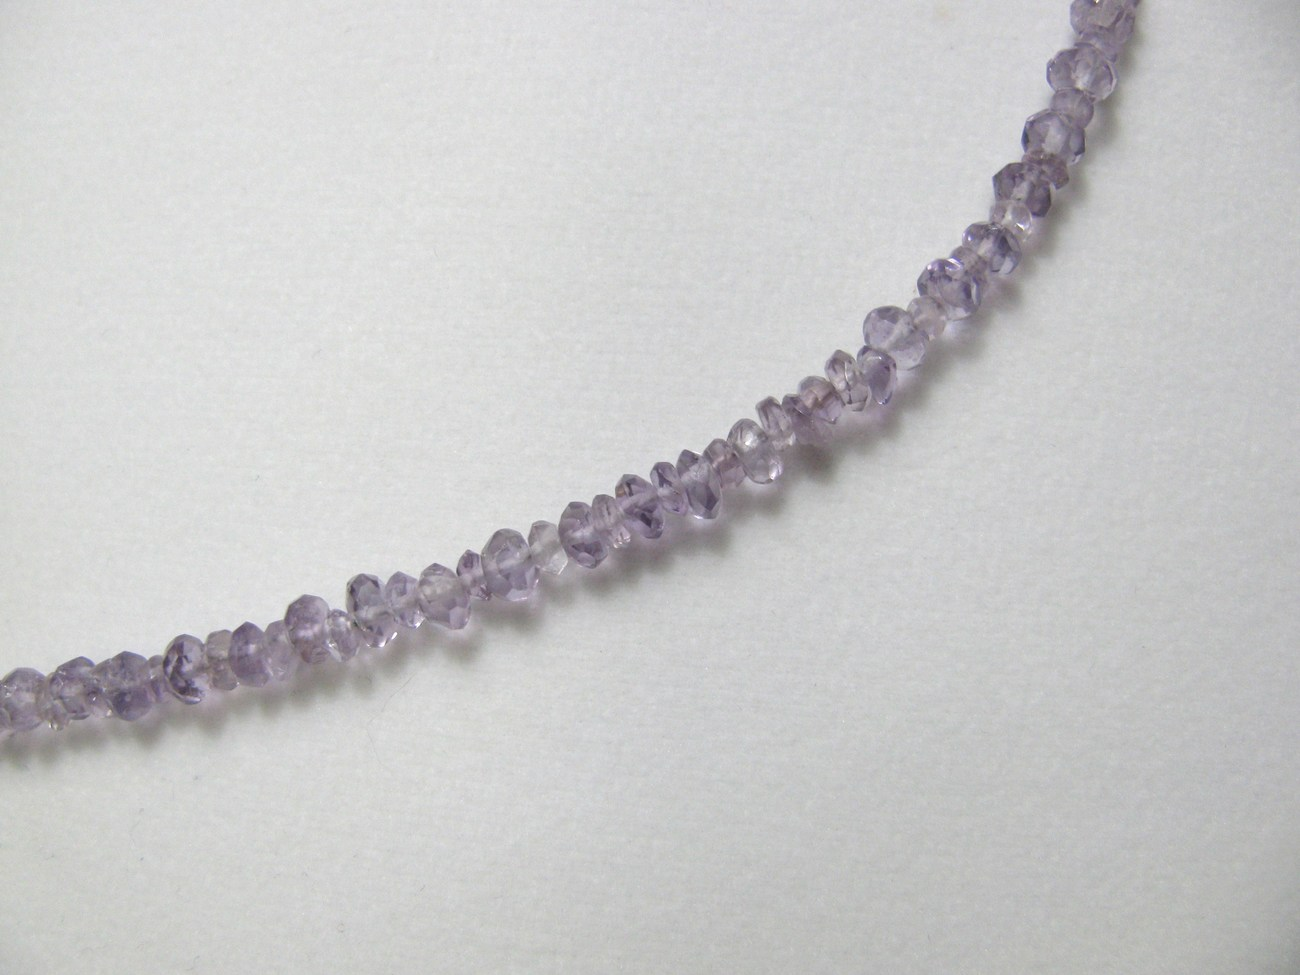 Amethyst Necklace 29 inches Sterling RKS258 RKMixables Silver Collection image 5